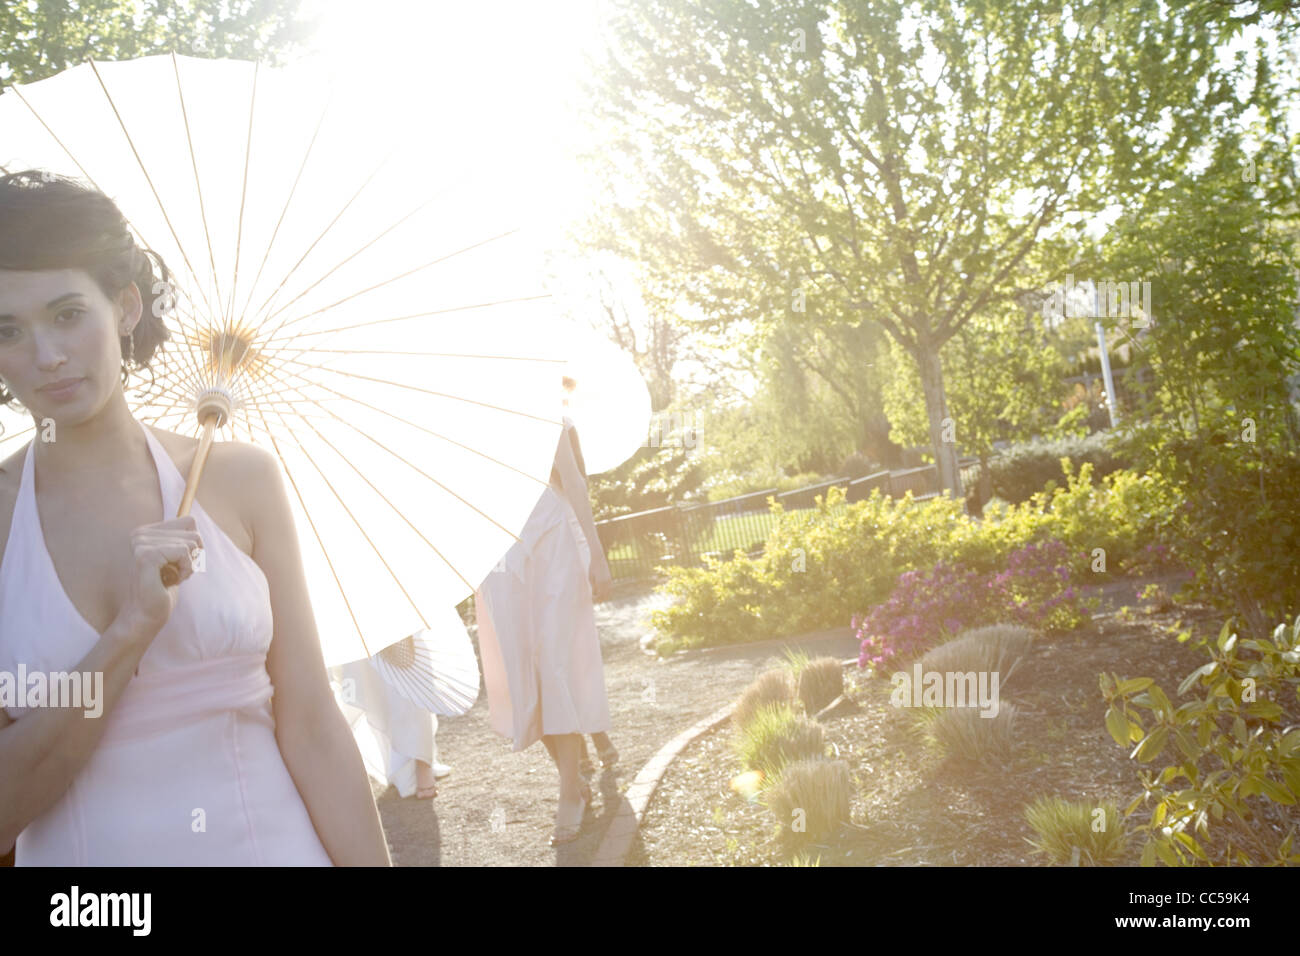 Woman in White with Paper Umbrella Stock Photo